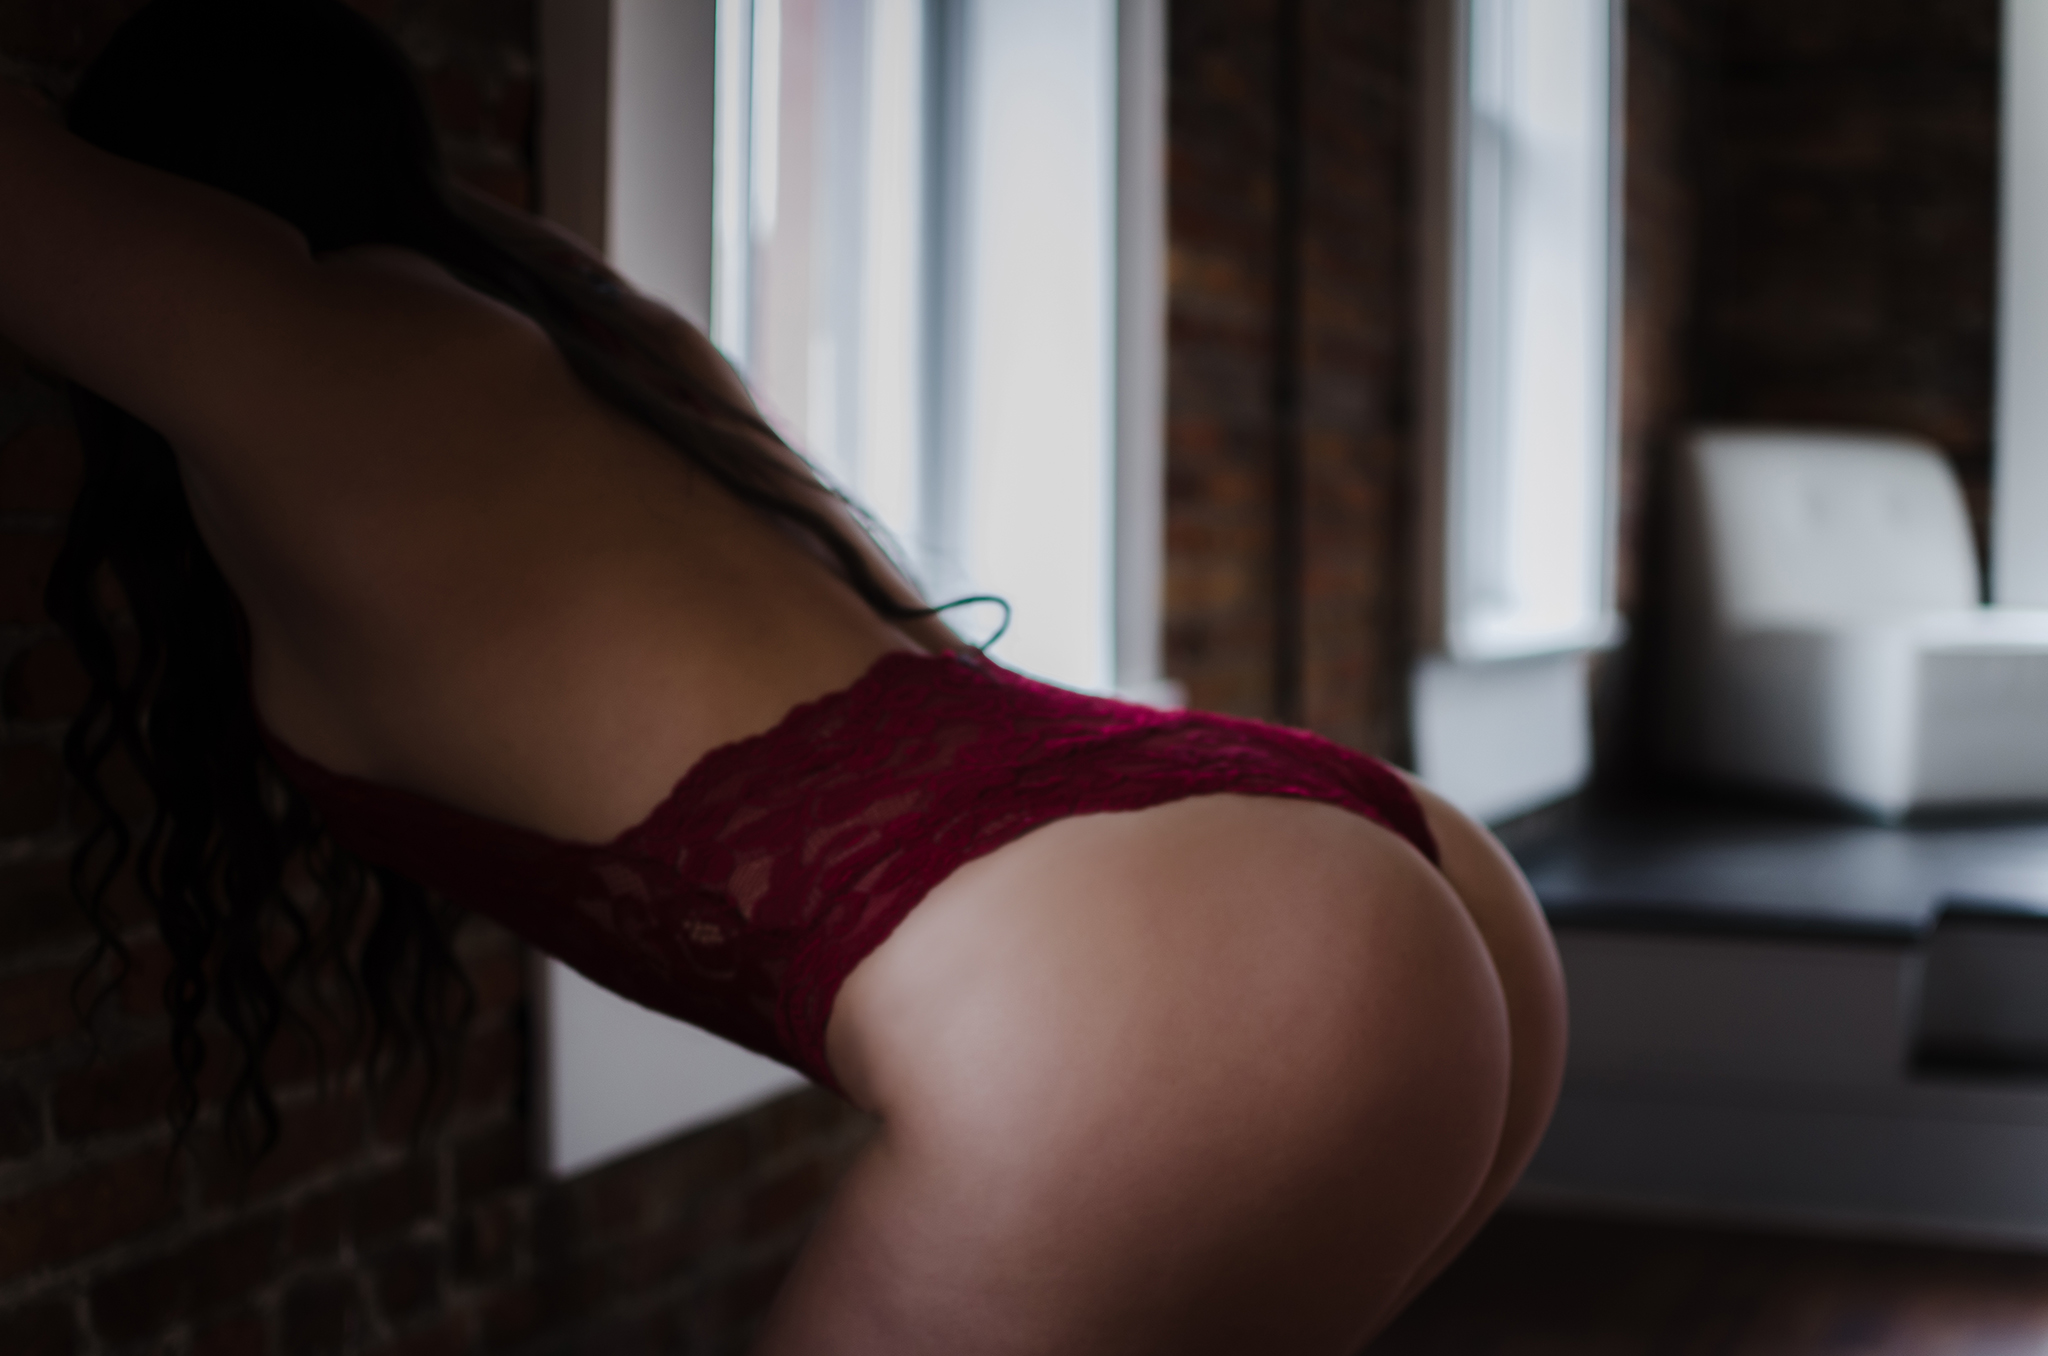 NC boudoir photography experience in belle vue wilmington venue with red lace bodysuit by Amandamarie Gillen Photography Wilmington NC photographer tushie tuesday pose